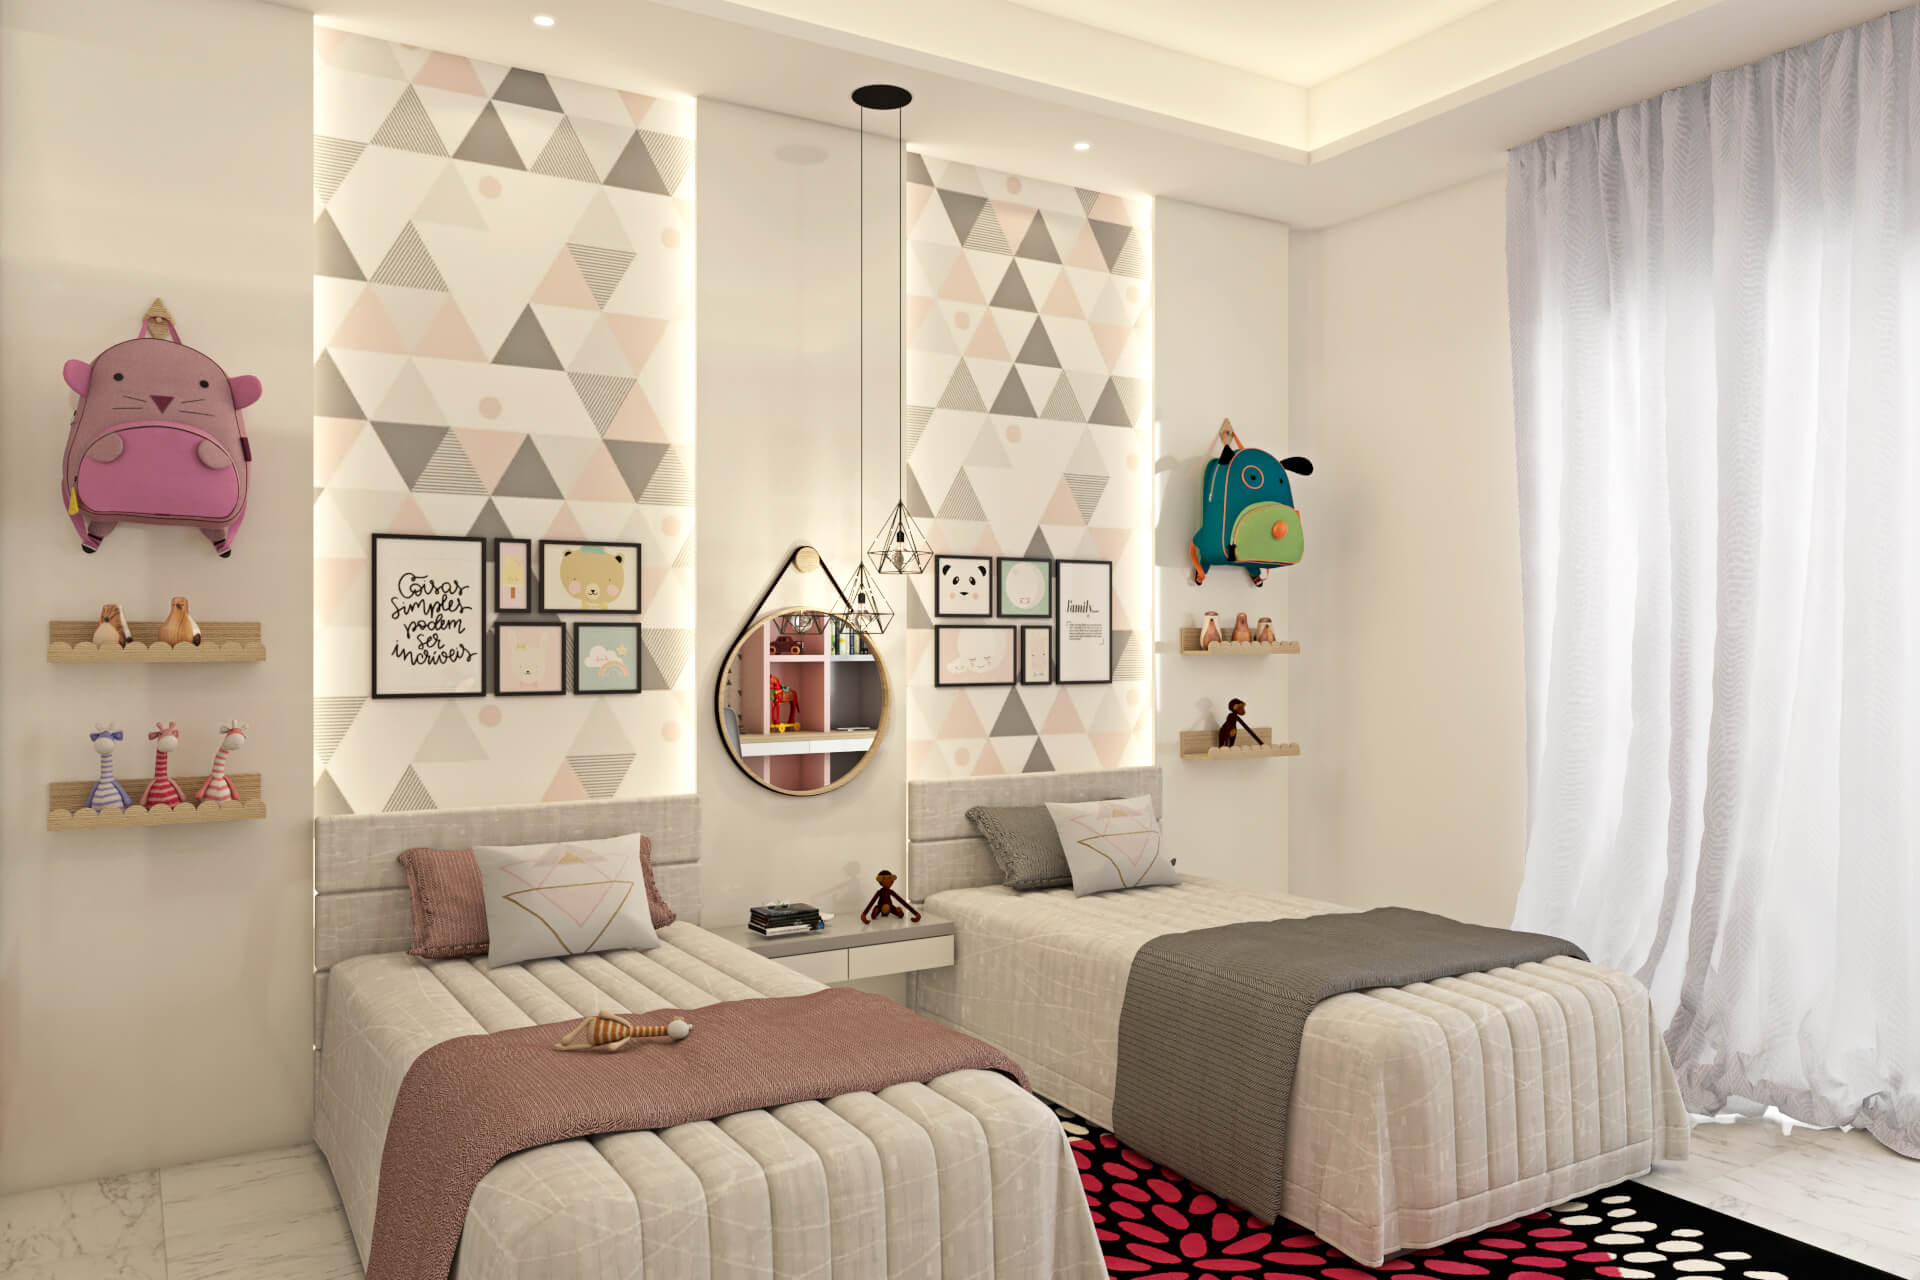 Interior Design Company in Bangladesh, interior design firm in Bangladesh